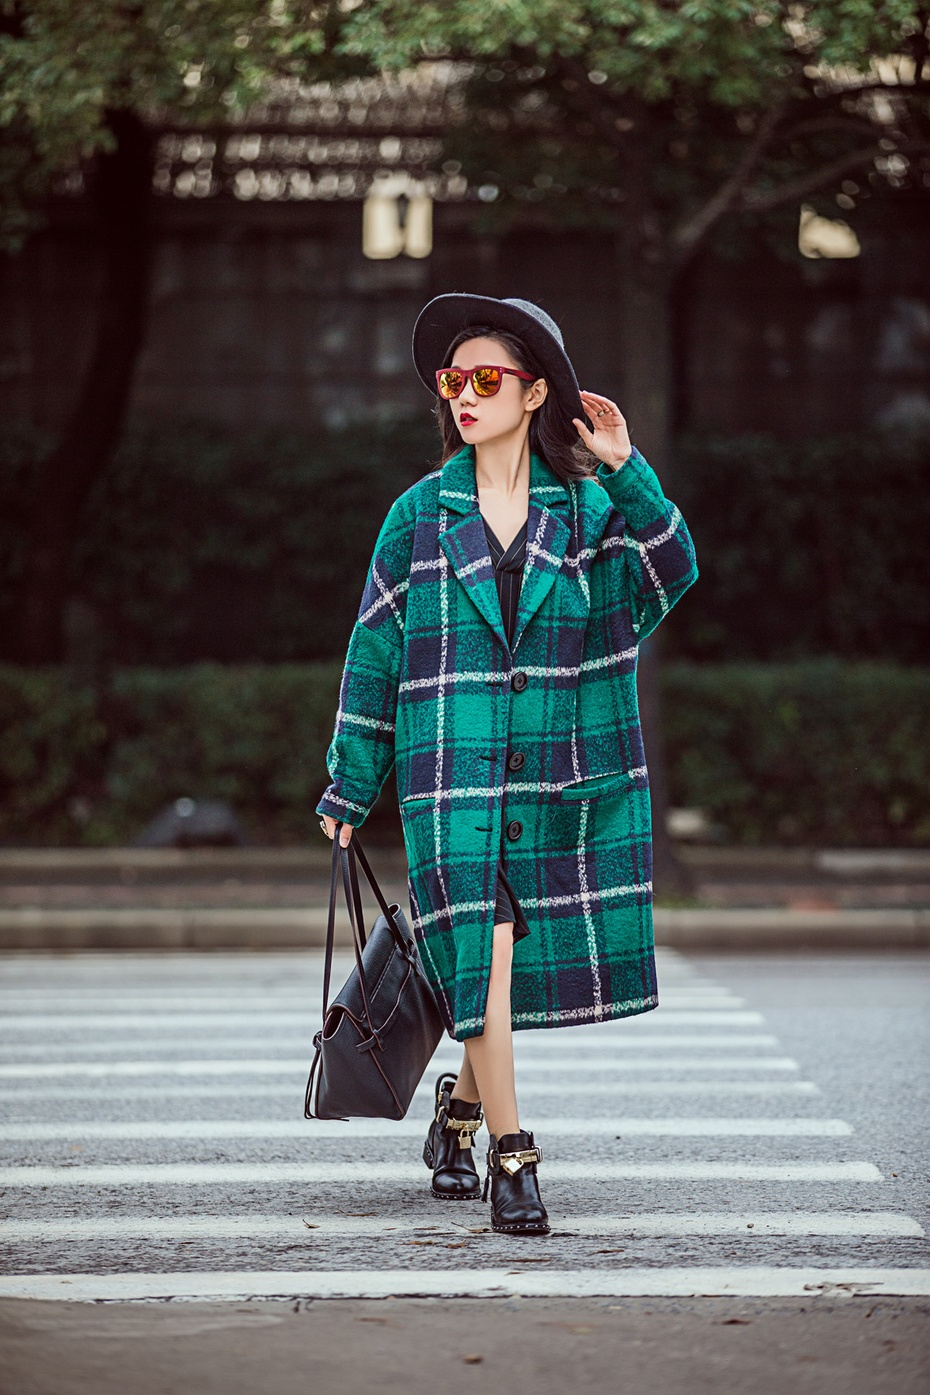 [Ava搭配日记]—— 冬日里穿起Oversize - AvaFoo - Avas Fashion Blog